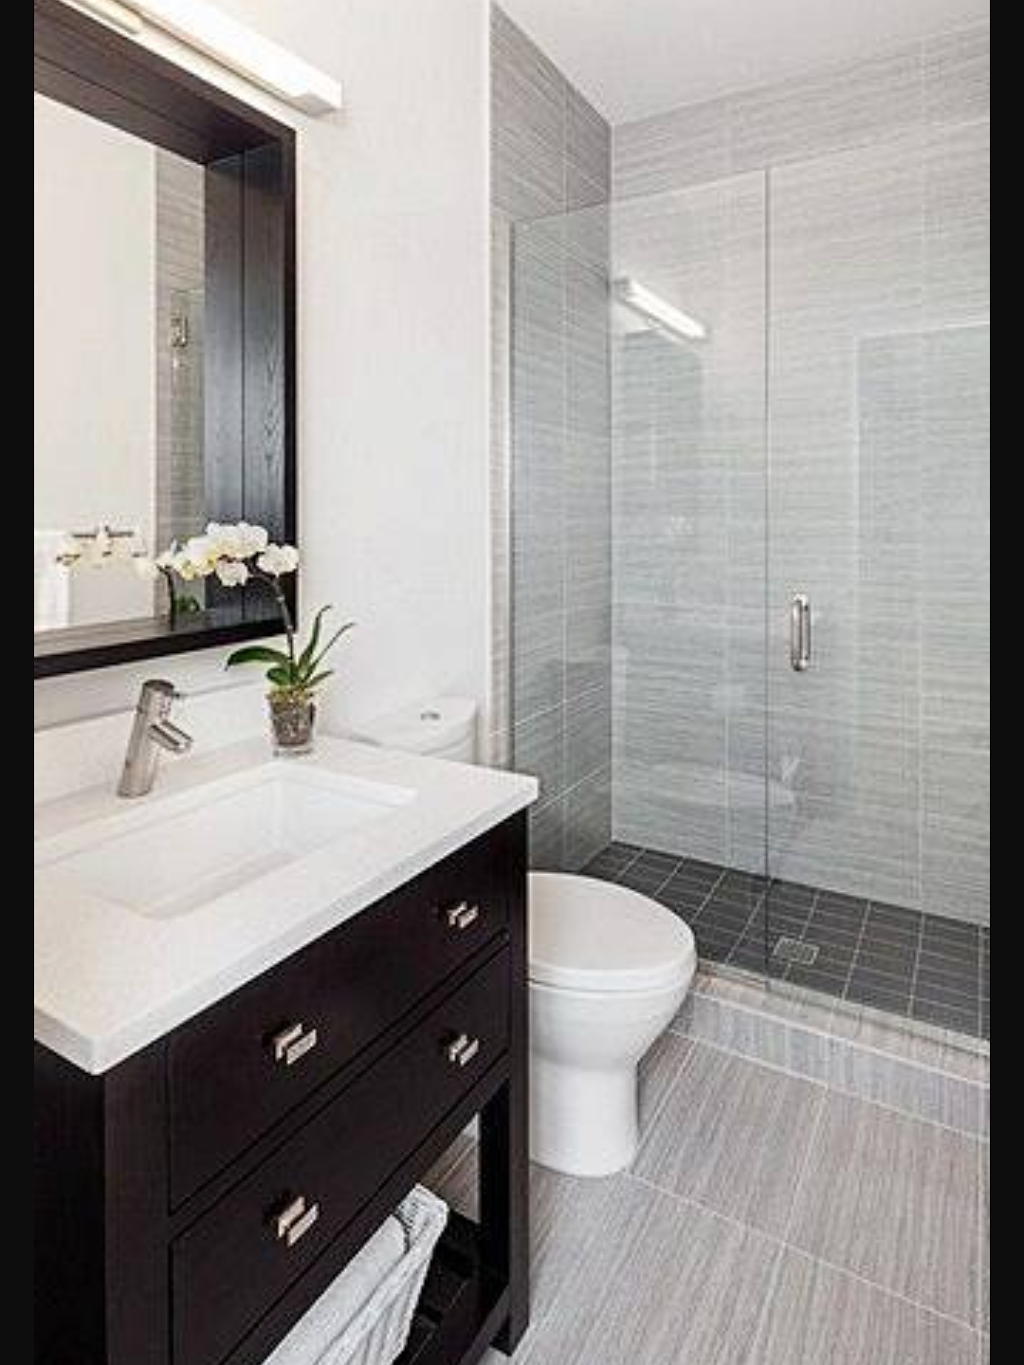 EzzE Home Renovations Inc | point of interest | 506-1257 Lakeshore Rd E, Mississauga, ON L5E 1G3, Canada | 6473337424 OR +1 647-333-7424